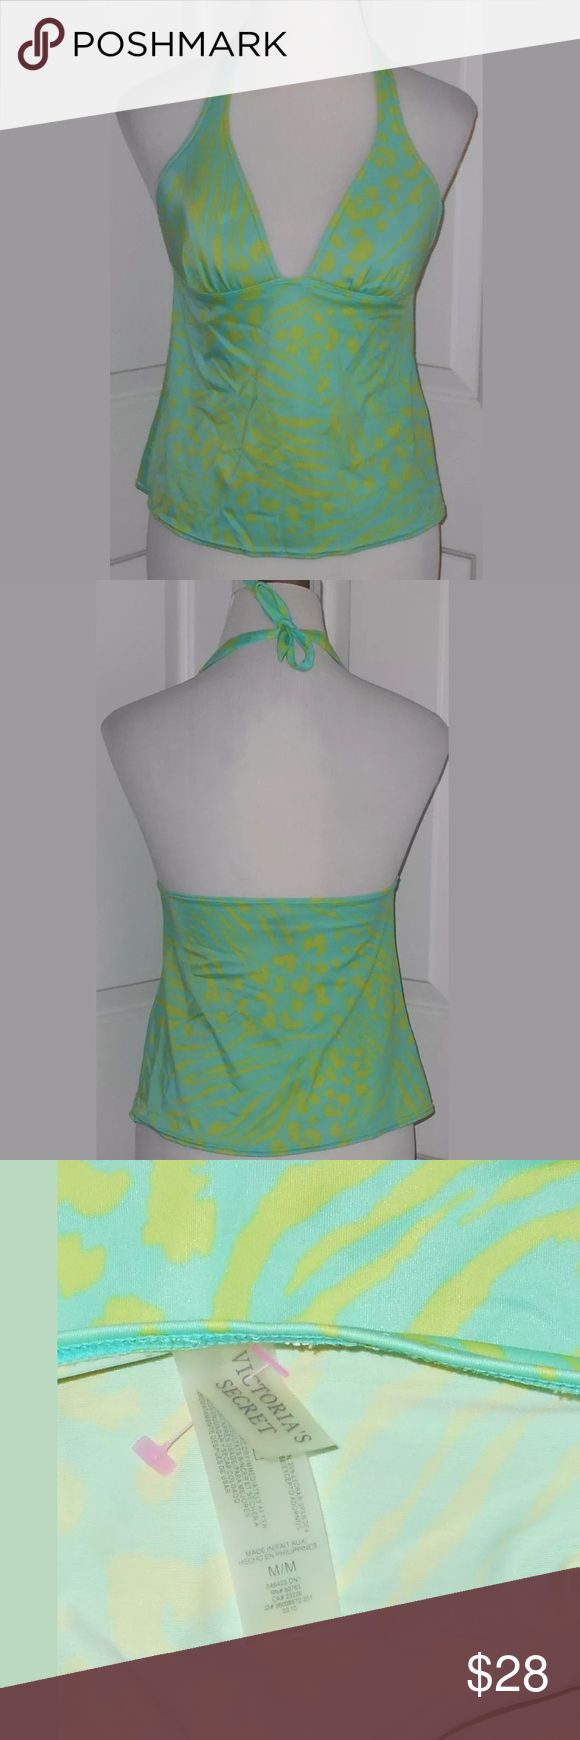 Victoria's Secret Green Tankini Top size M Victoria's Secret Green Animal Print Tankini Swimsuit Top. Women's size Medium. Great, gently used condition. Victoria's Secret Swim